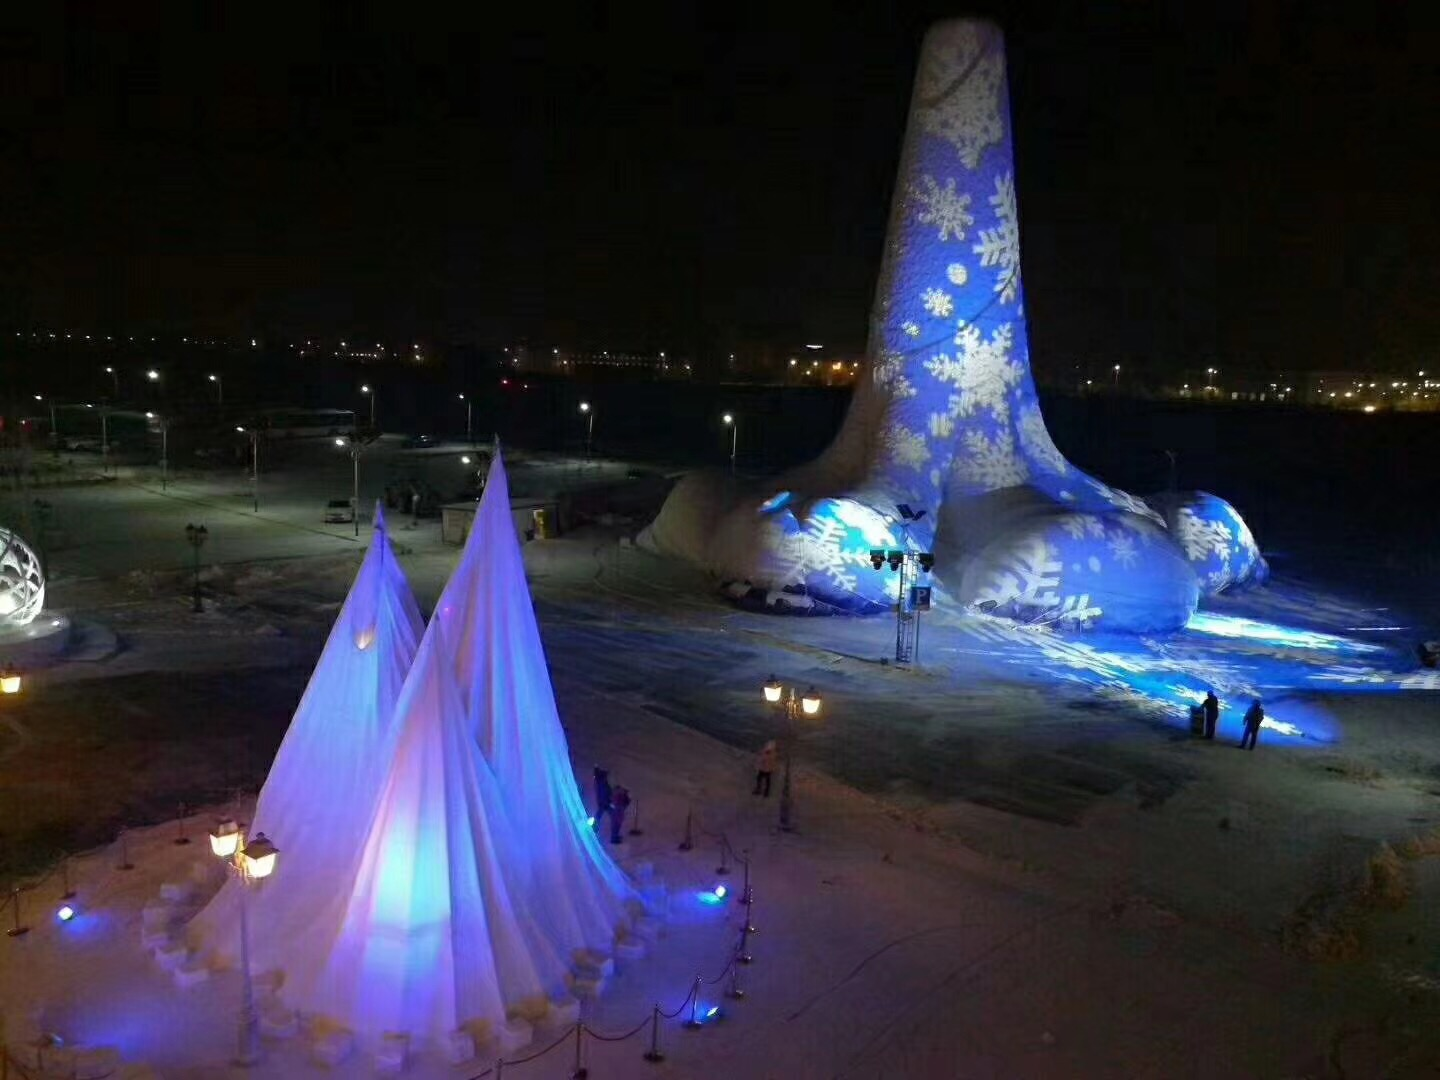 The final sculpture, consisting of three ice spires, is illuminated in Harbin, China.